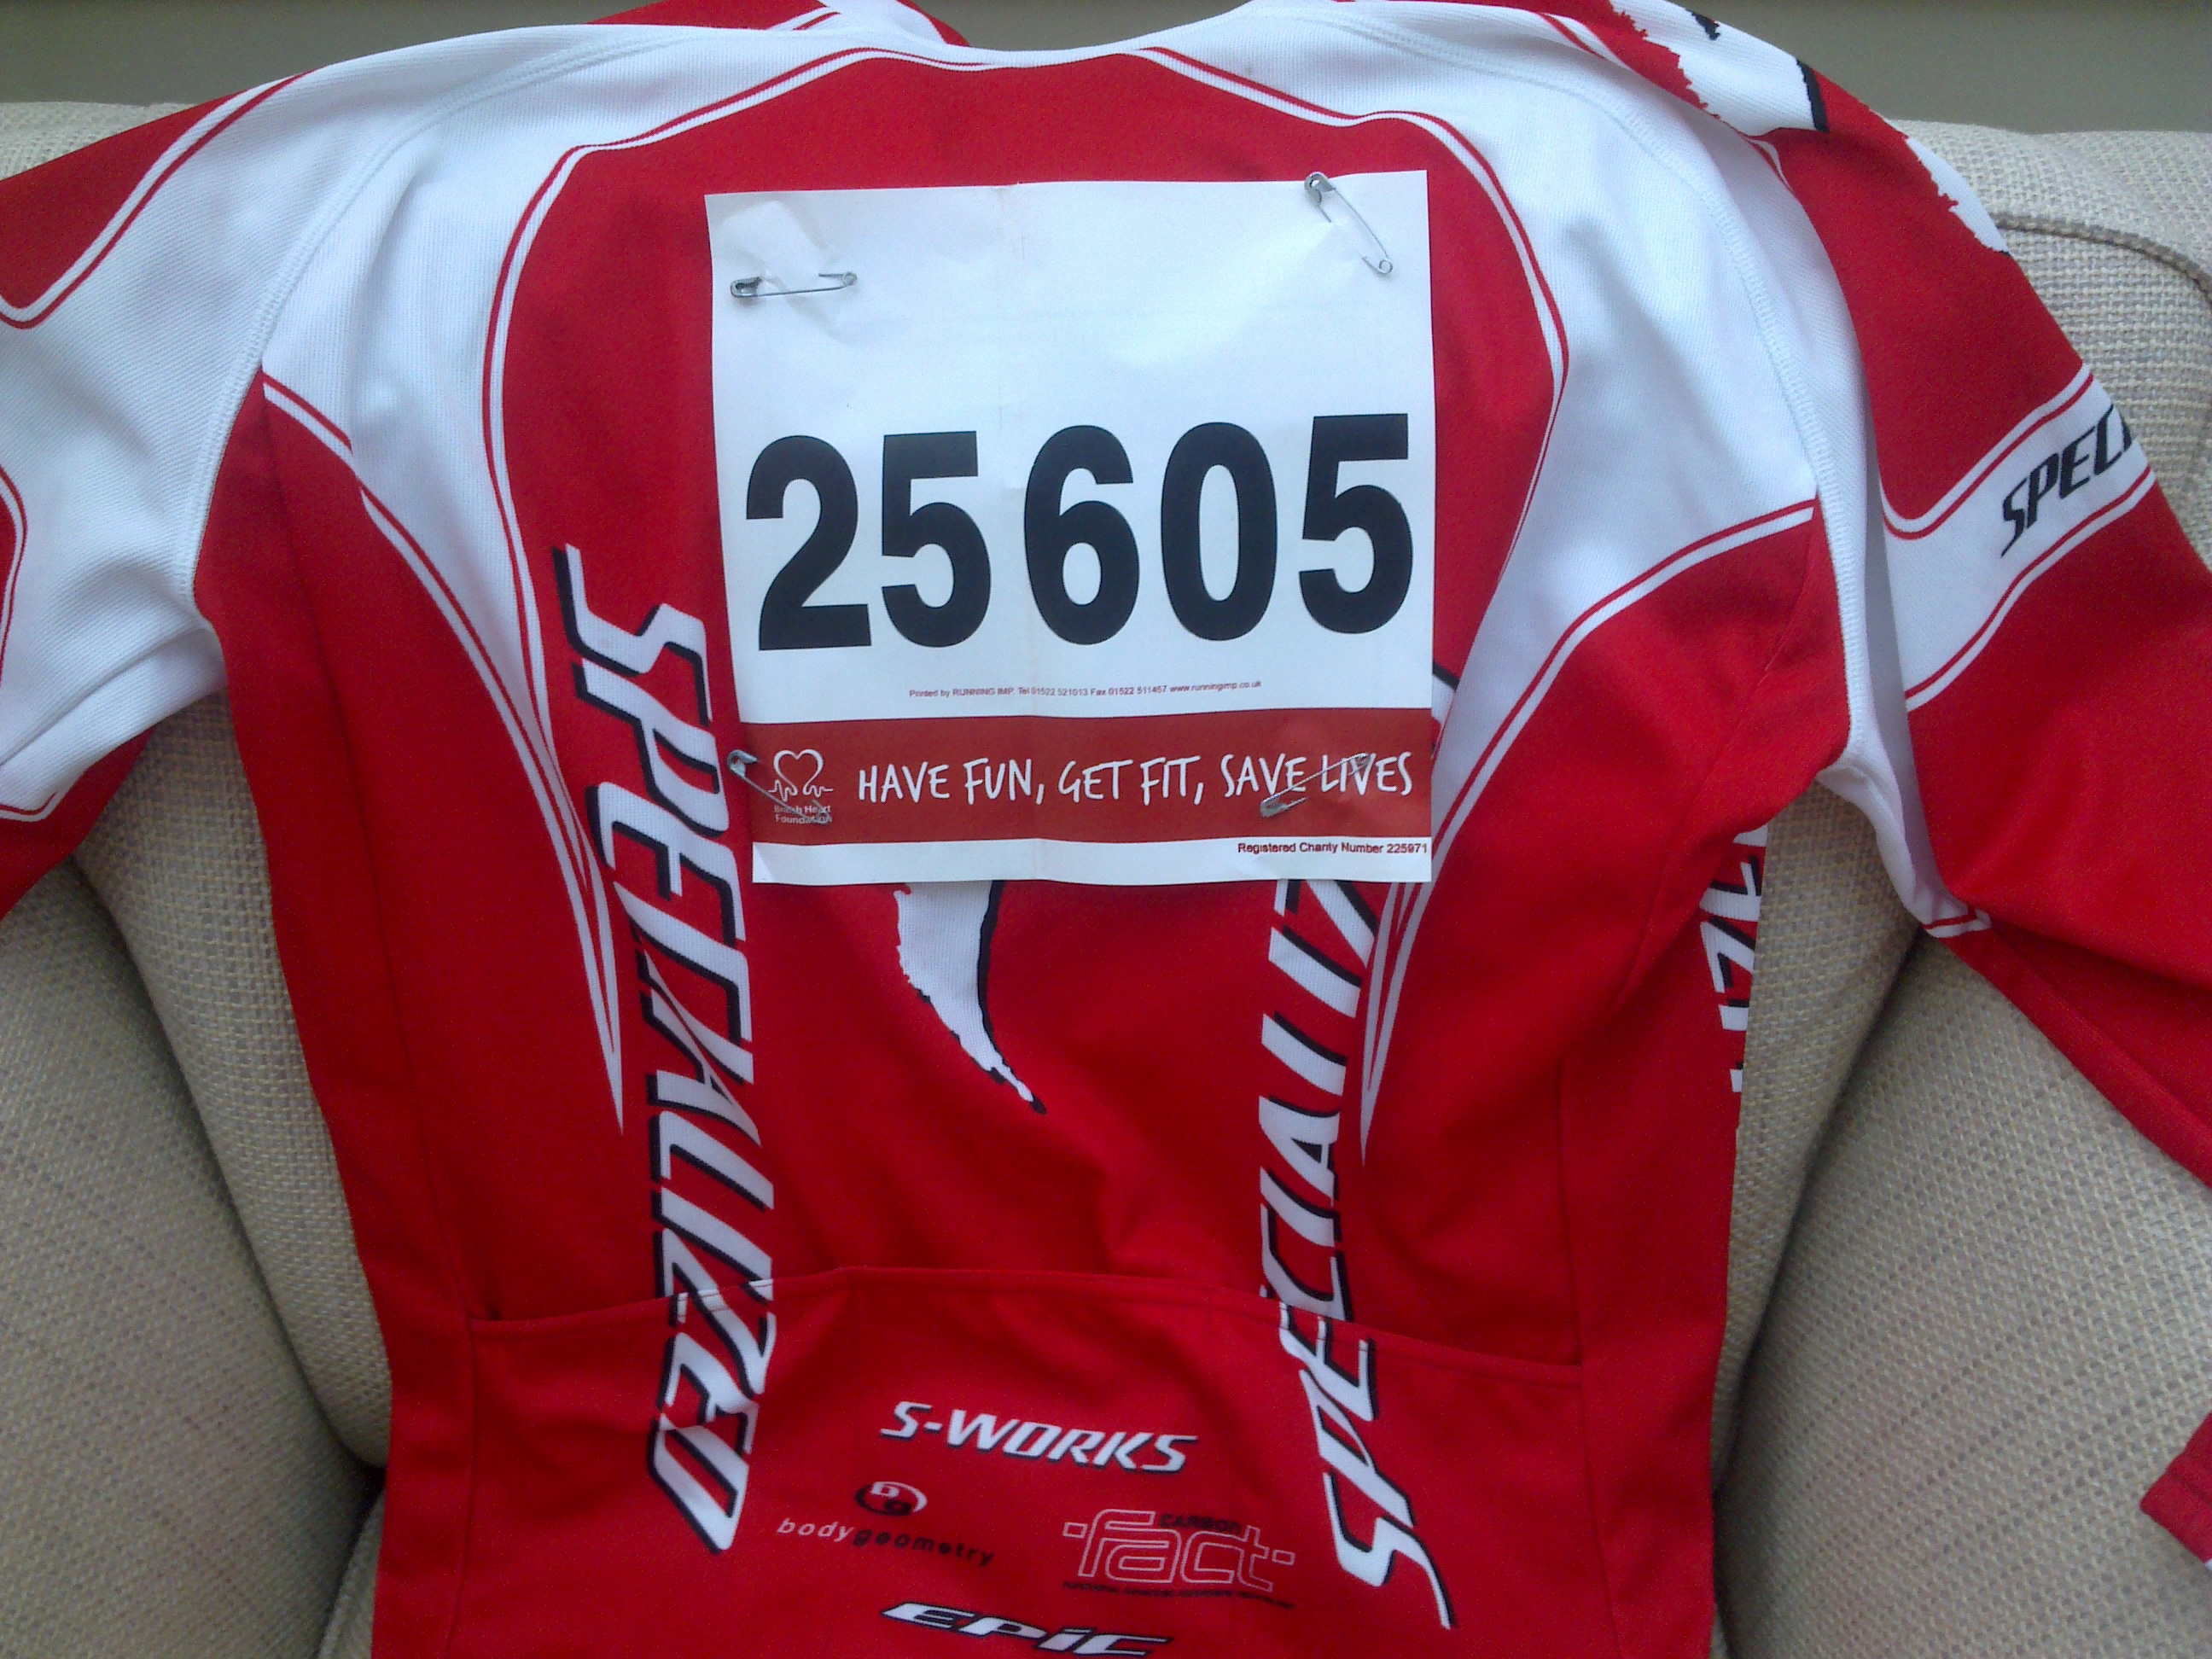 British Heart Foundation South Wales Bike Ride 2011 – Mutterings for ... f1d729236